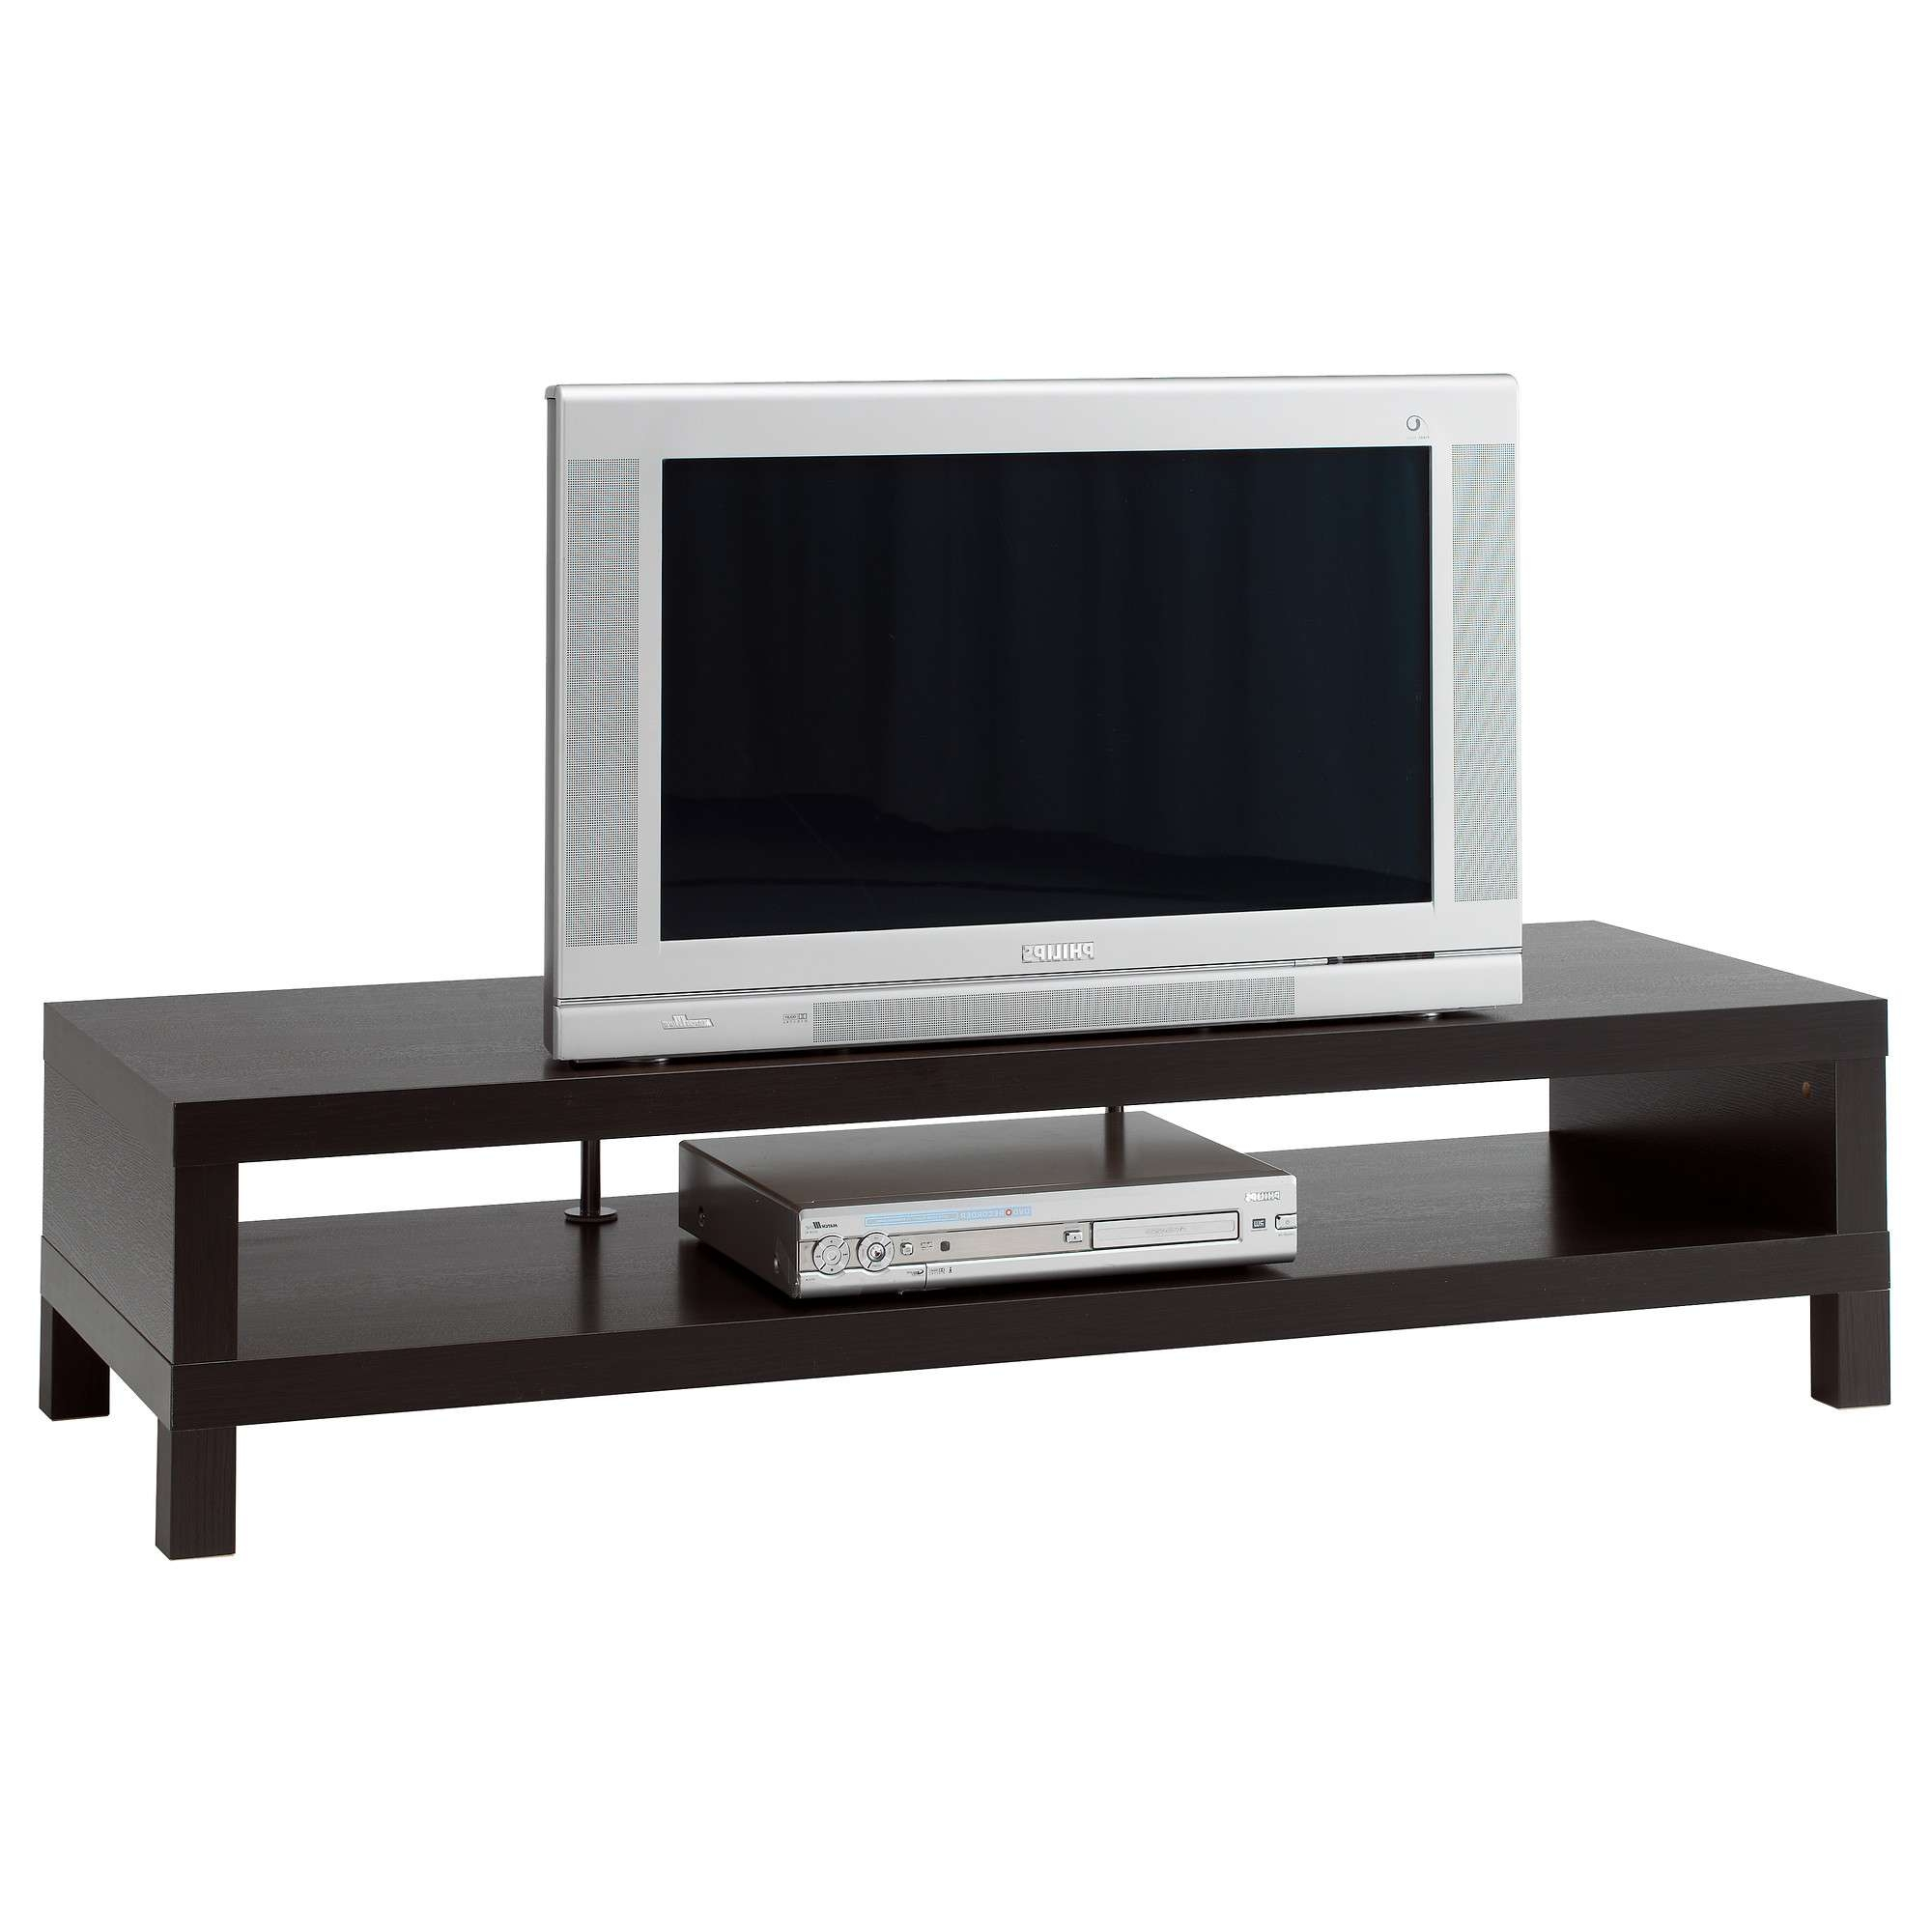 Lack Tv Unit – Ikea Within Rectangular Tv Stands (View 6 of 15)